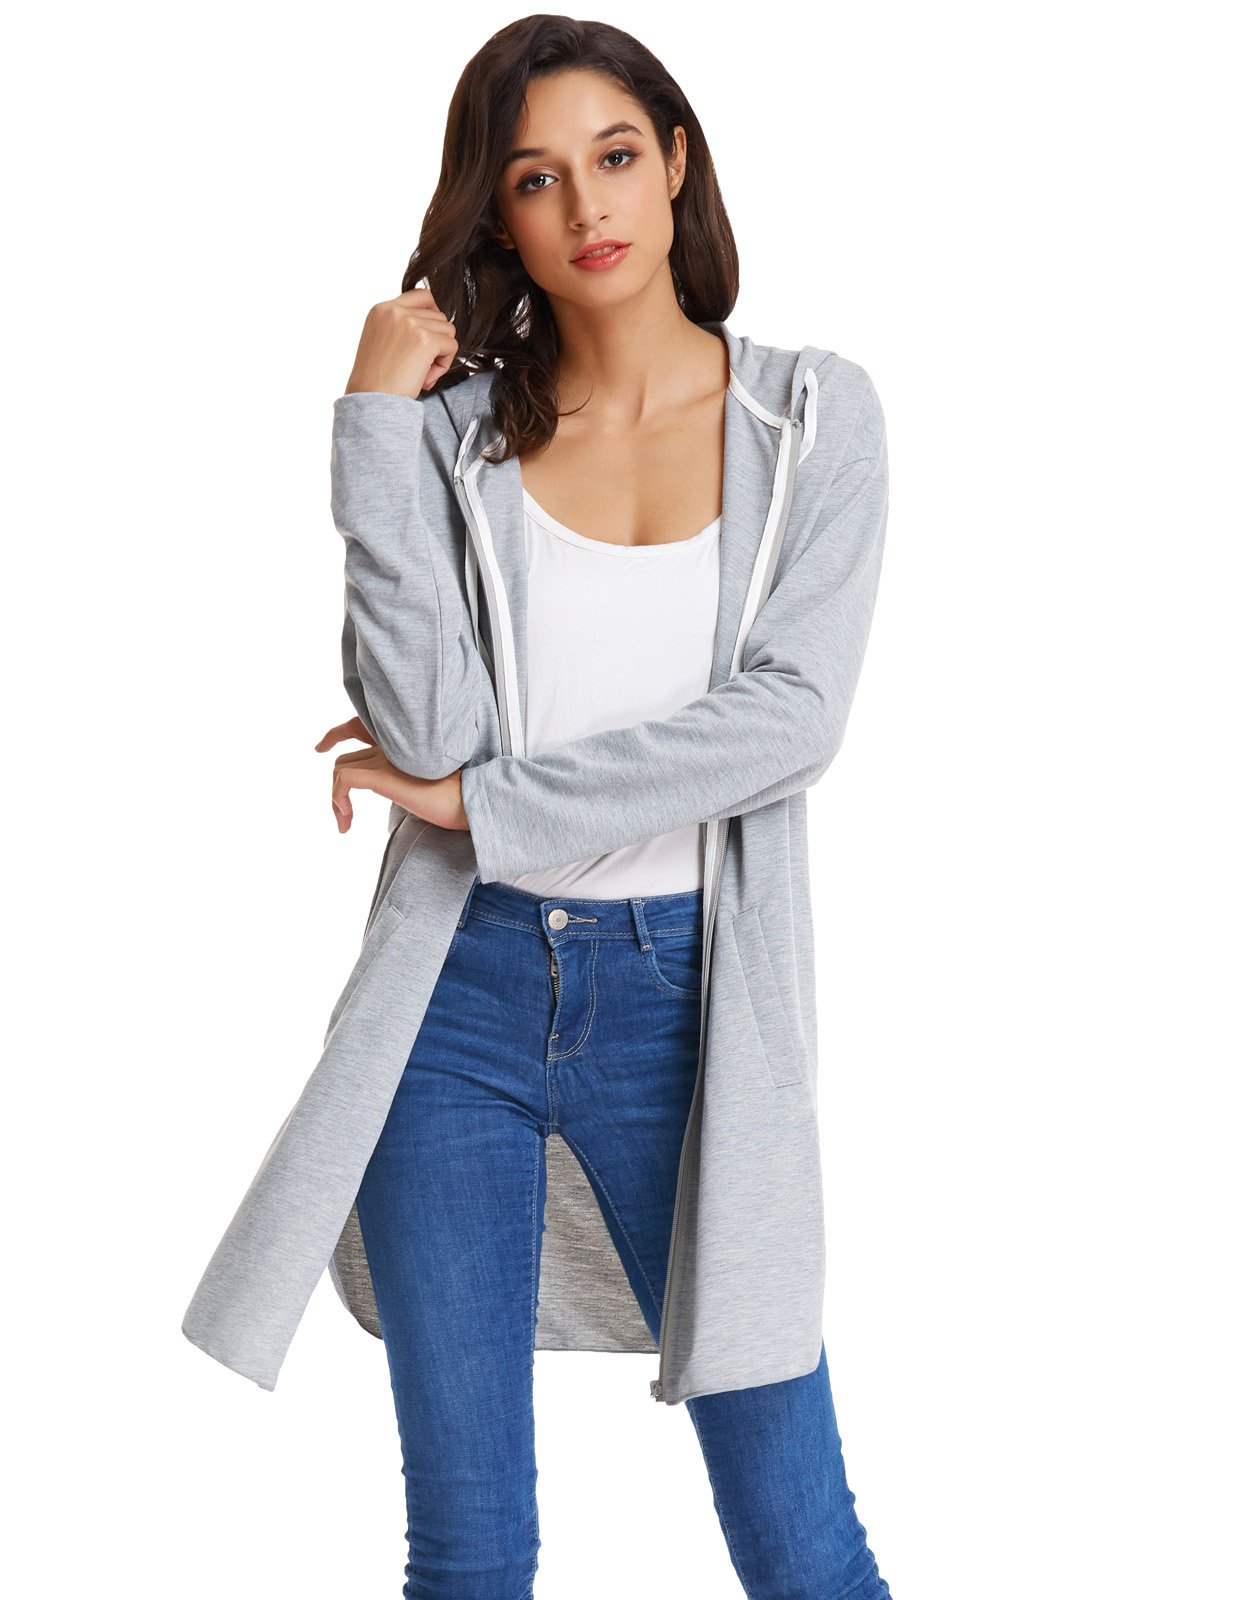 GRACE KARIN Women's Casual Street Style Hoodie Uniform Coat Jackets (XL,Light Grey) by GRACE KARIN